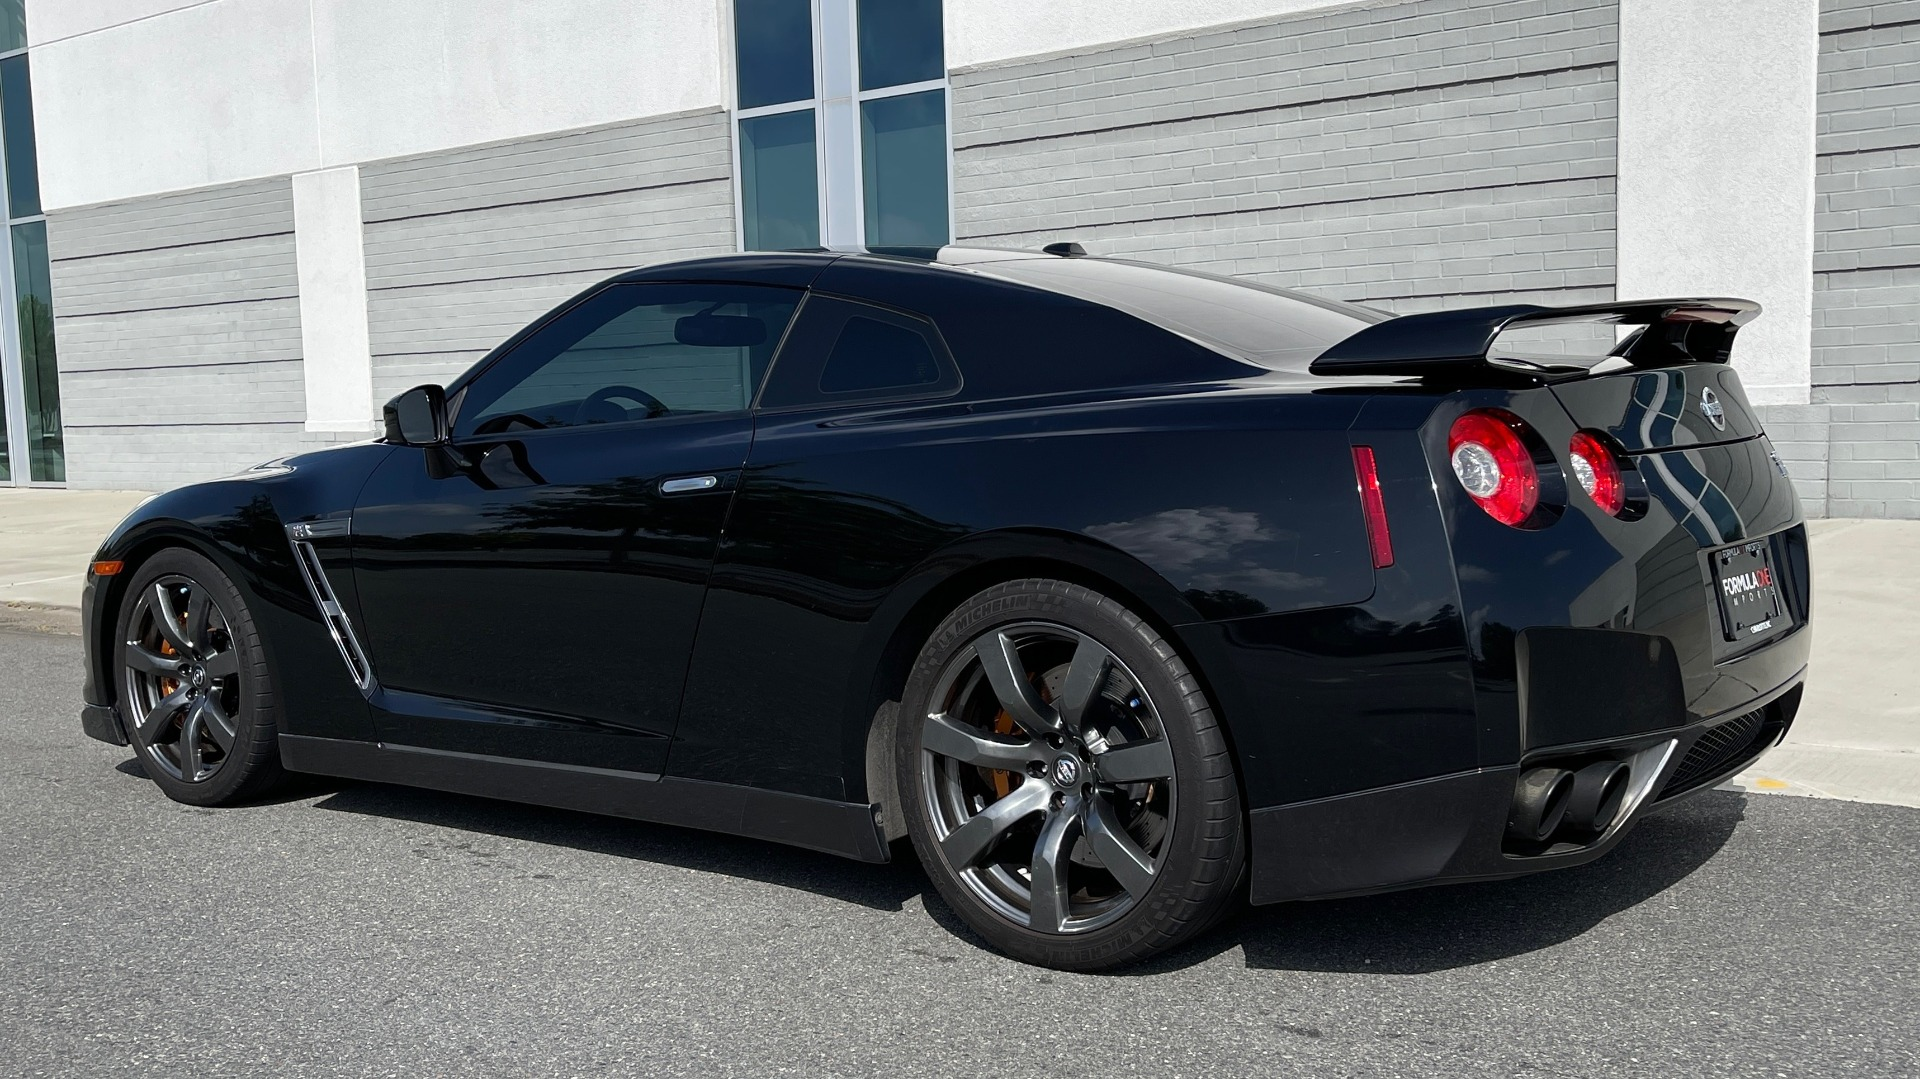 Used 2009 Nissan GT-R PREMIUM COUPE / AWD / TT 3.8L V6 / NAV / BOSE / BREMBO for sale $57,995 at Formula Imports in Charlotte NC 28227 4